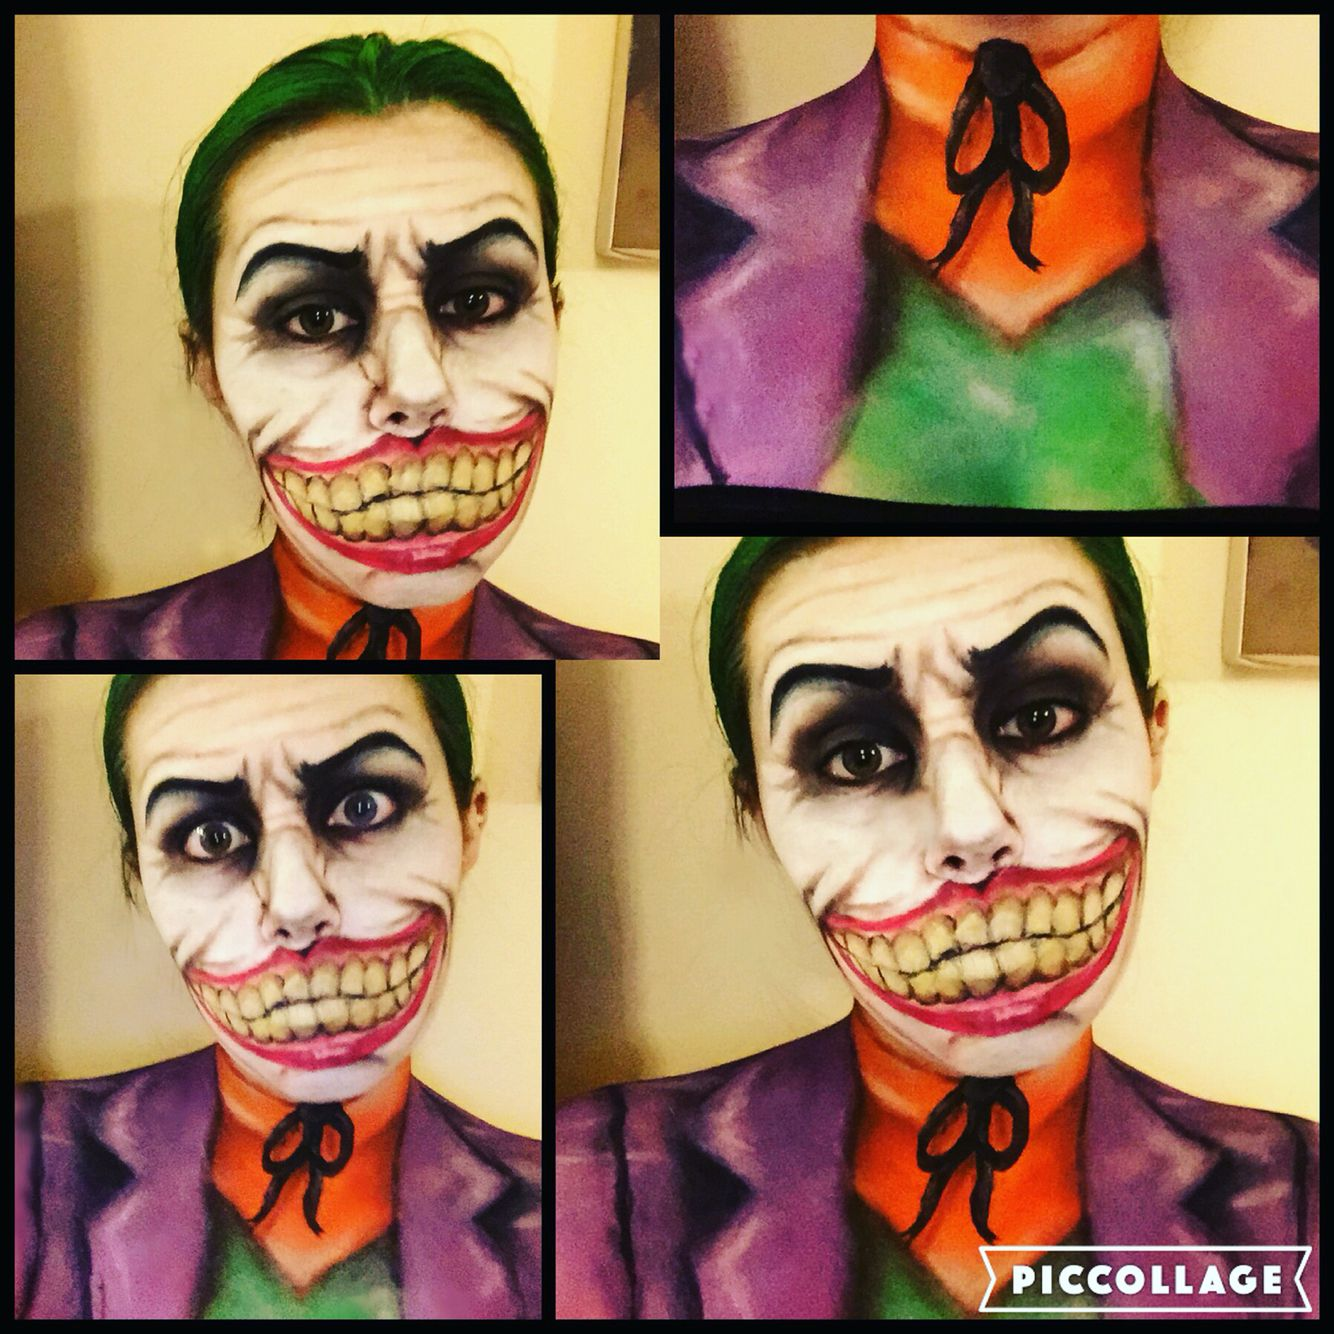 My Joker makeup makeup joker sfx facepaint Joker